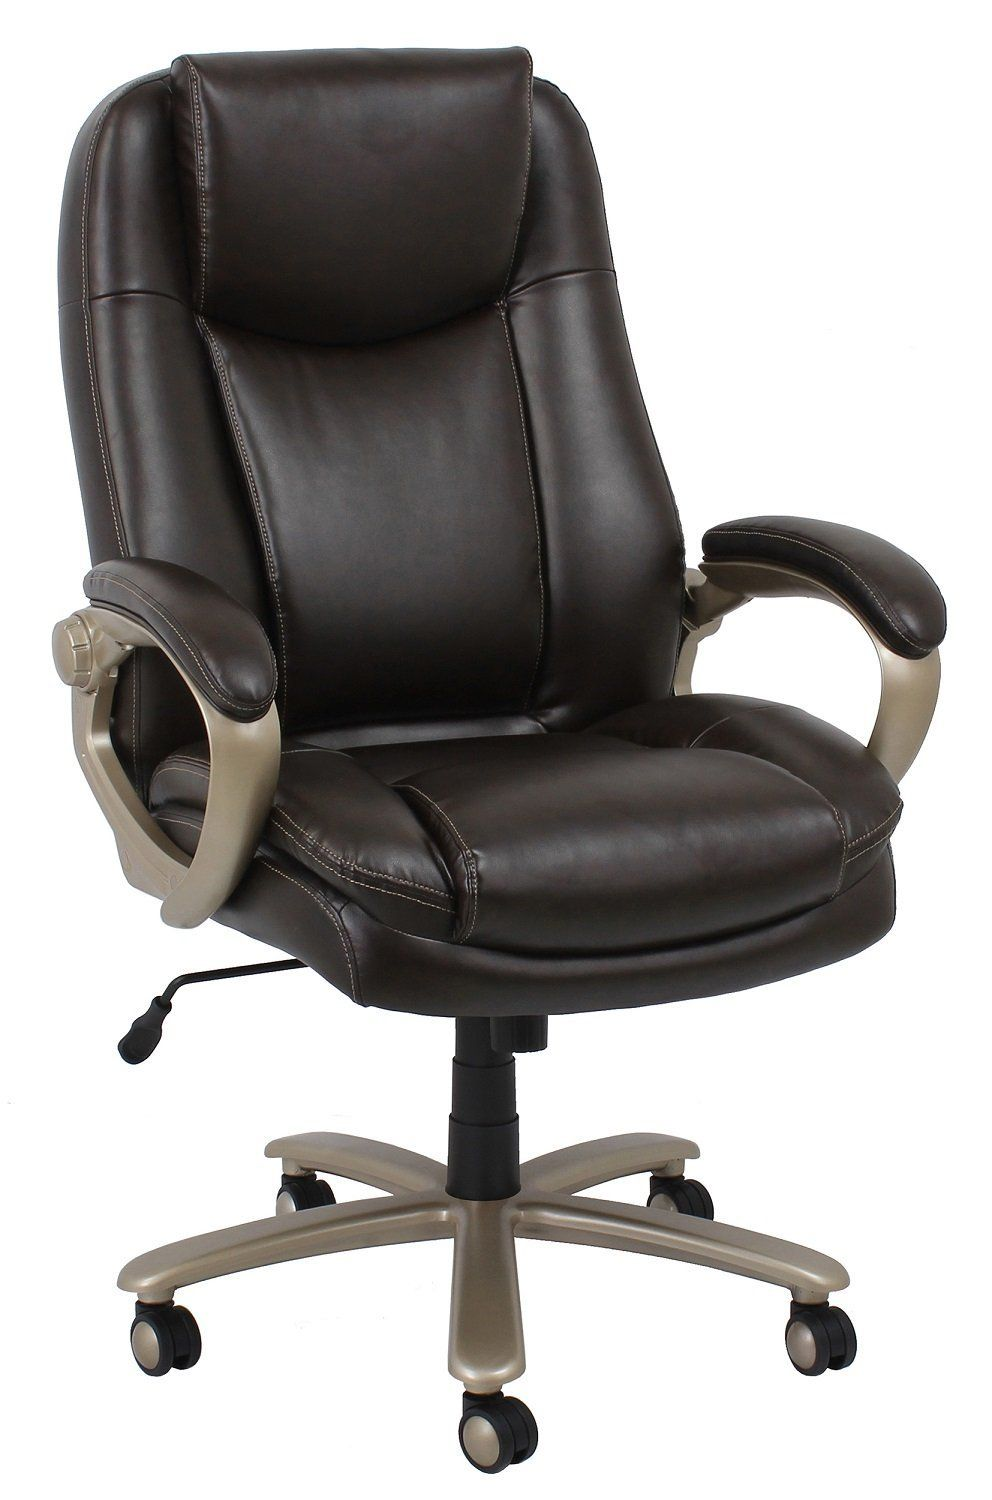 Pin by Five Stars on мебель Office chair, Executive